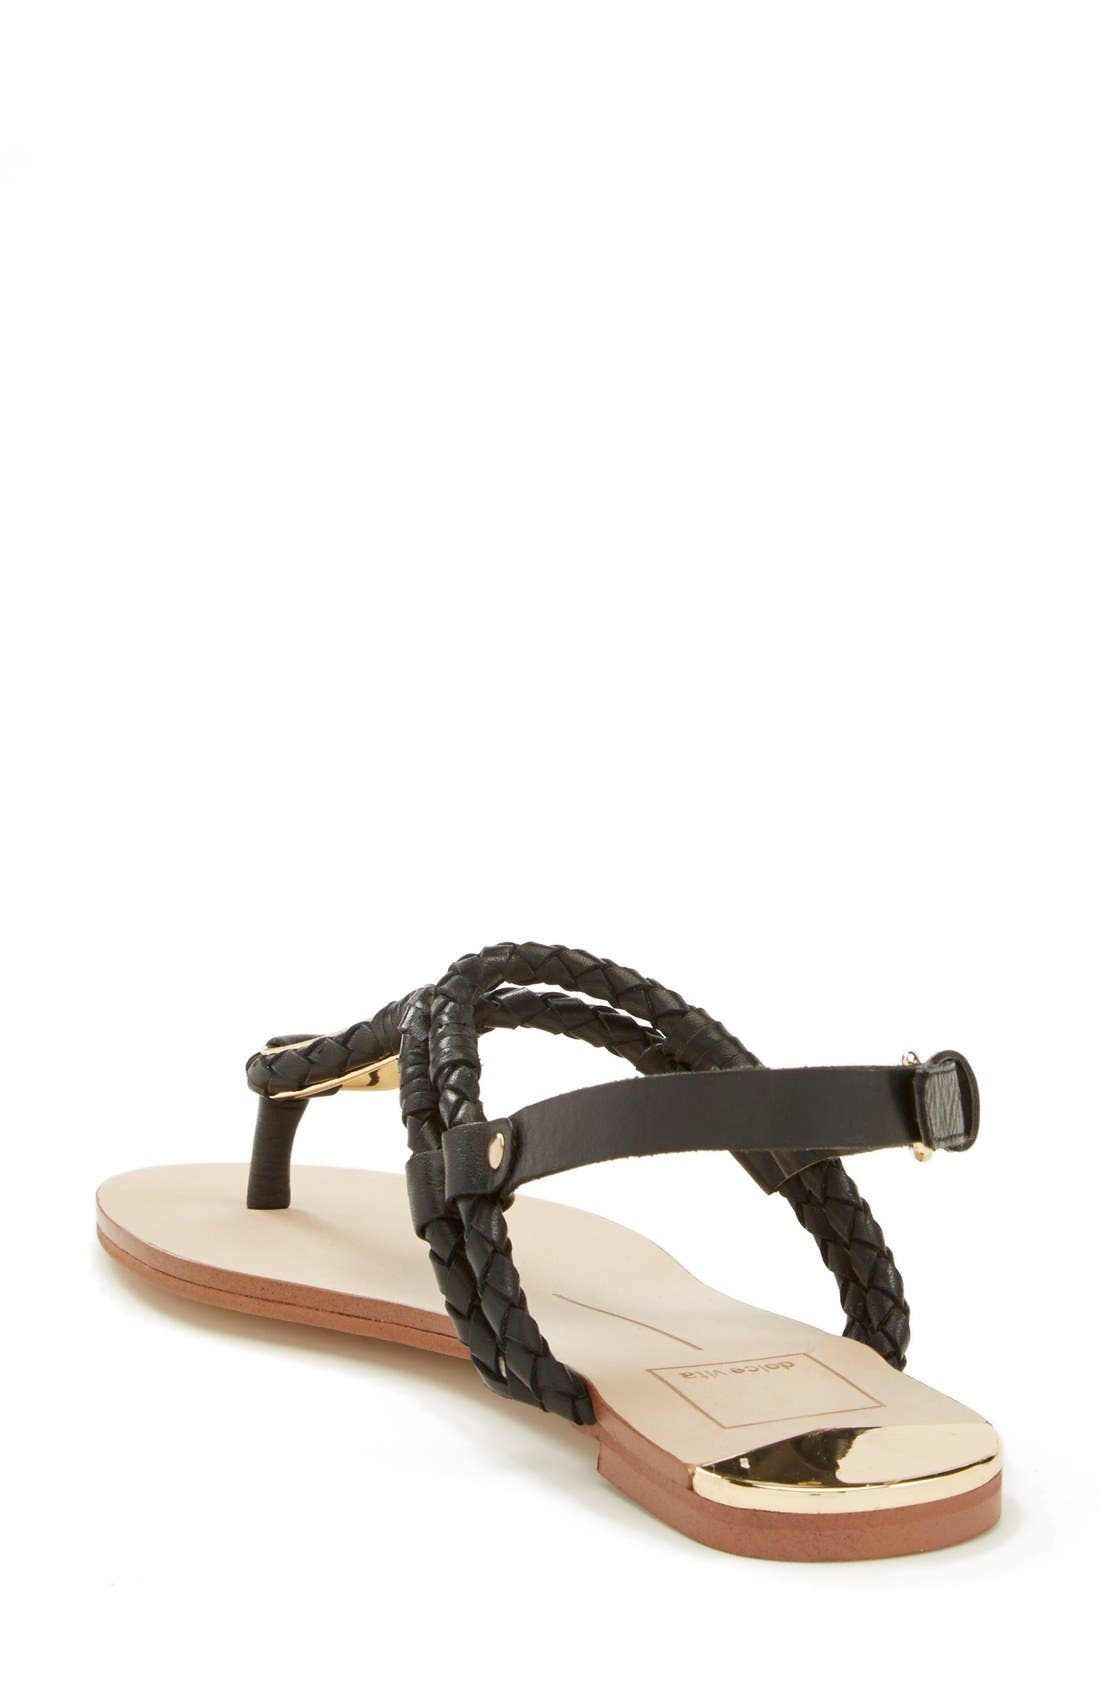 Alternate Image 2  - Dolce Vita 'Dixin' Thong Sandal (Women)